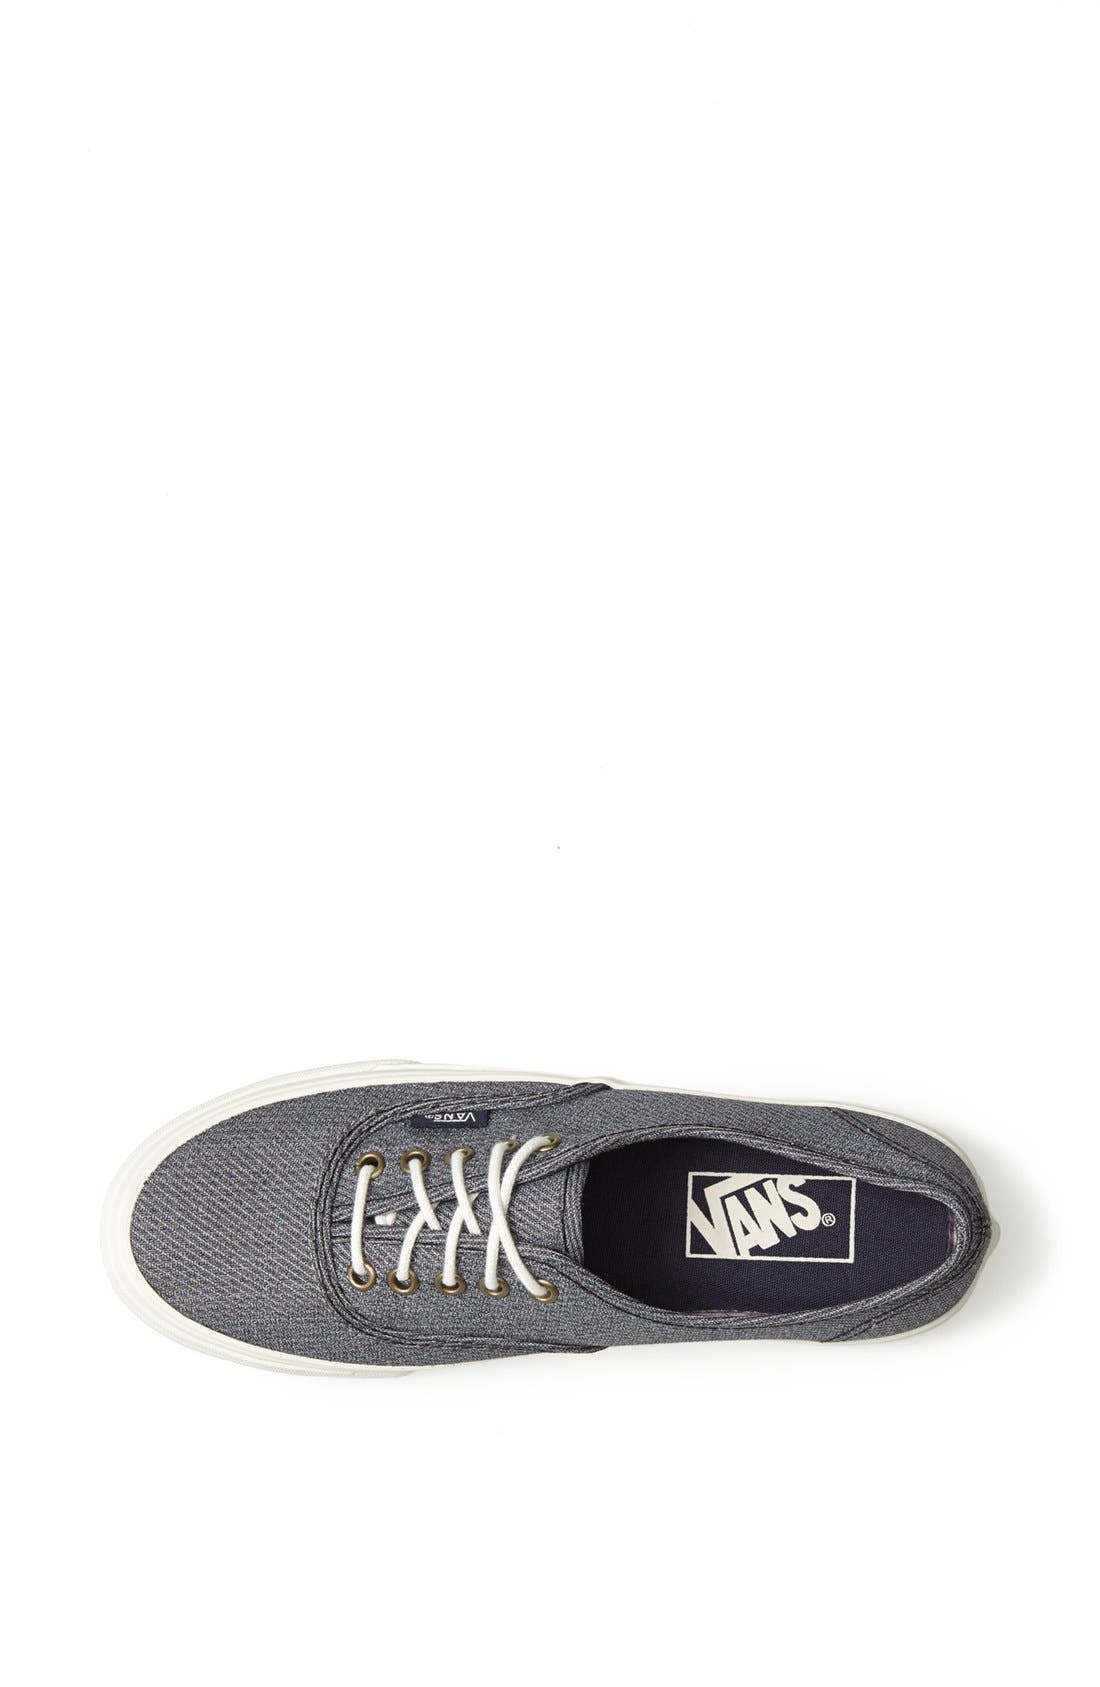 Alternate Image 3  - Vans 'Authentic - Slim' Sneaker (Women)